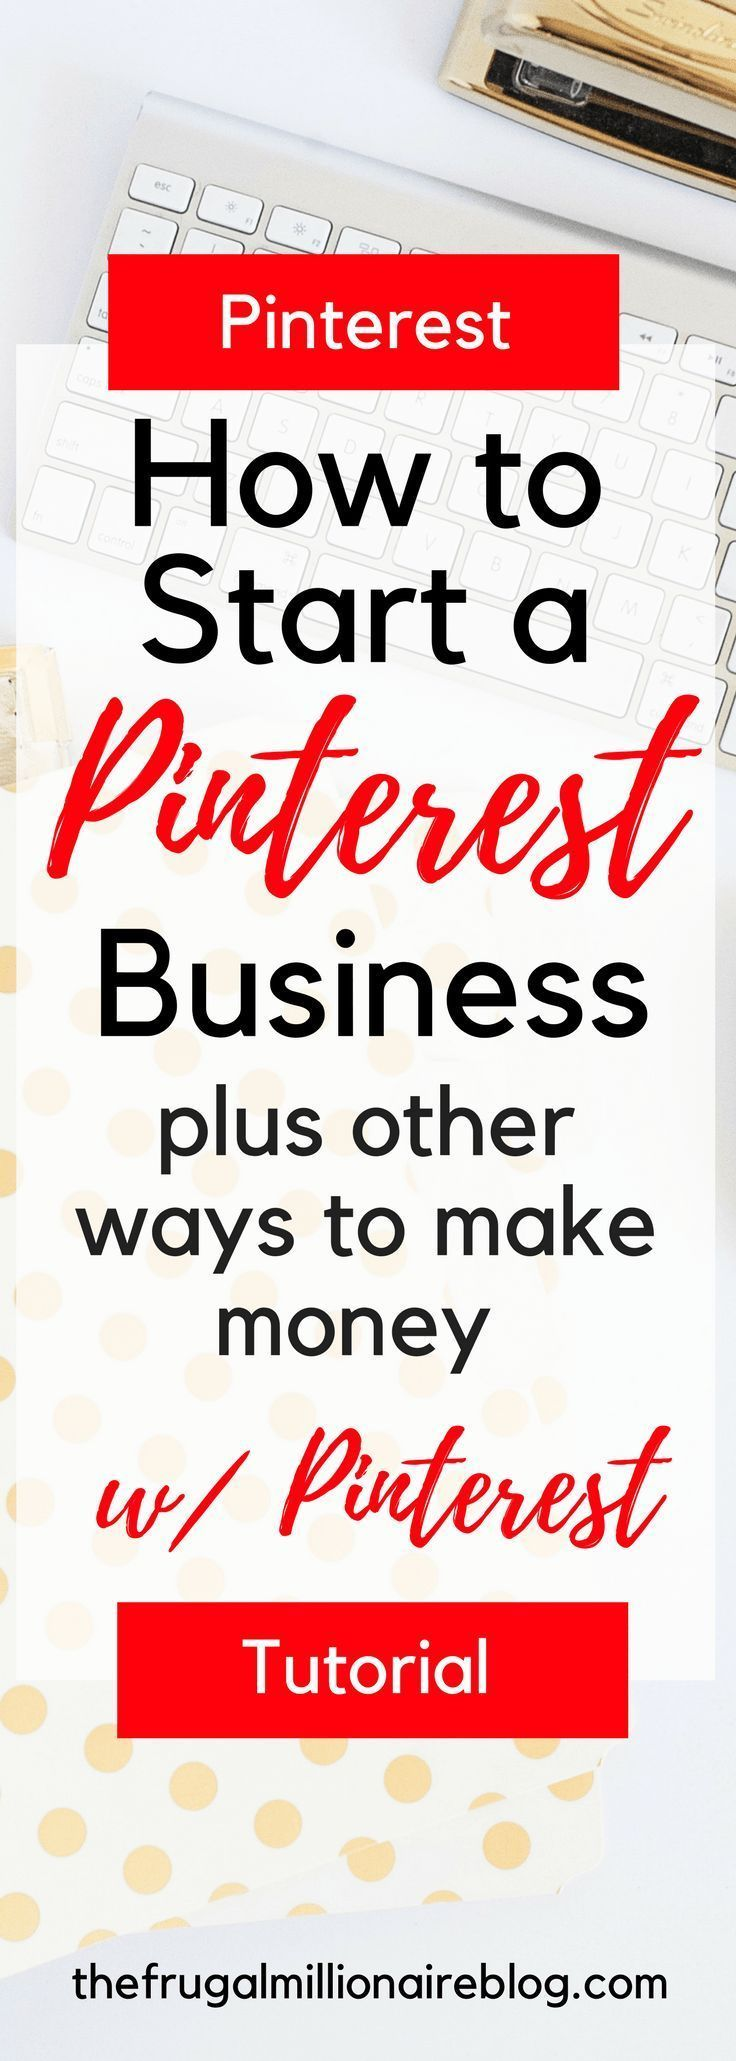 How to make extra money with Pinterest. Start a Pinterest business, ways to make money online. #makemoneyonline #virtualassistant #pinterestvirtualassistant #pinterest